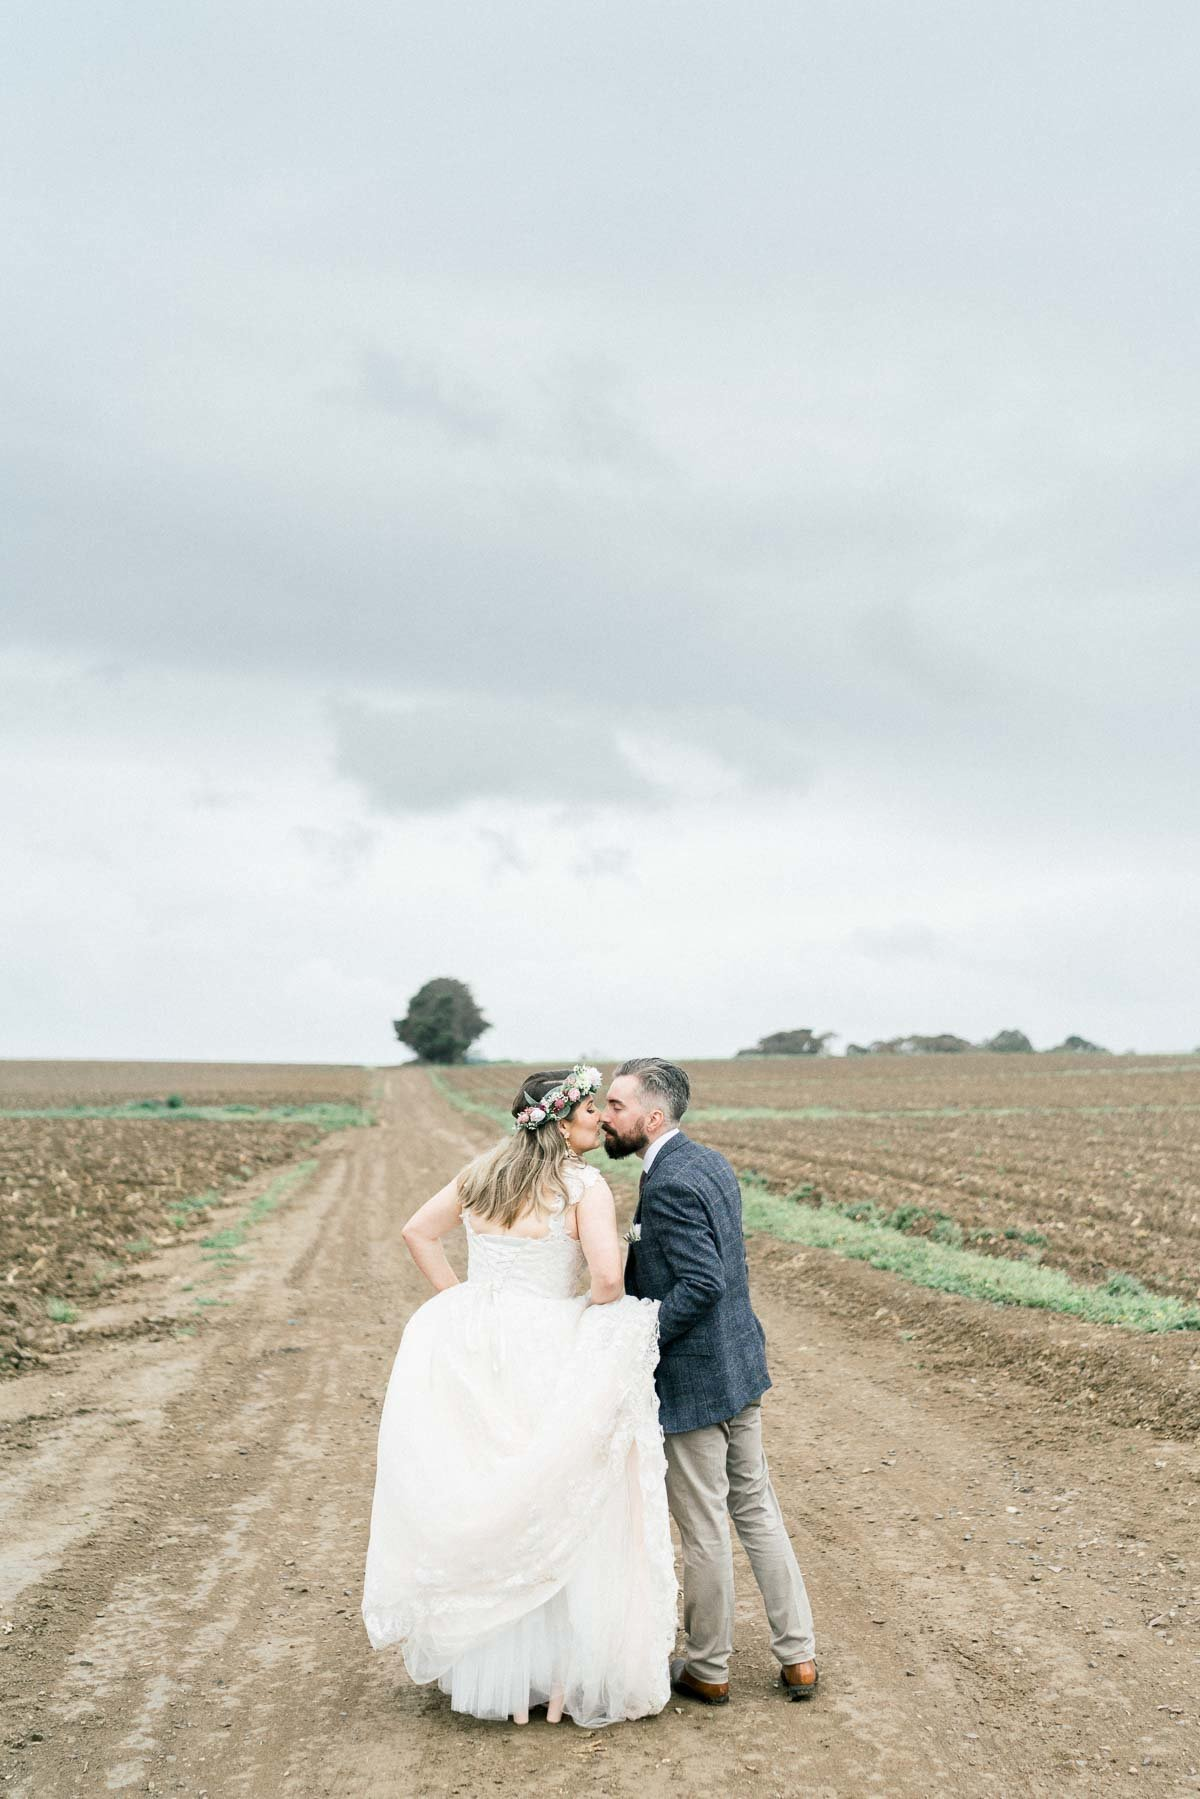 adams-farm-coldstream-yarra-valley-wedding-heart+soul-weddings-kel-jarryd-05498